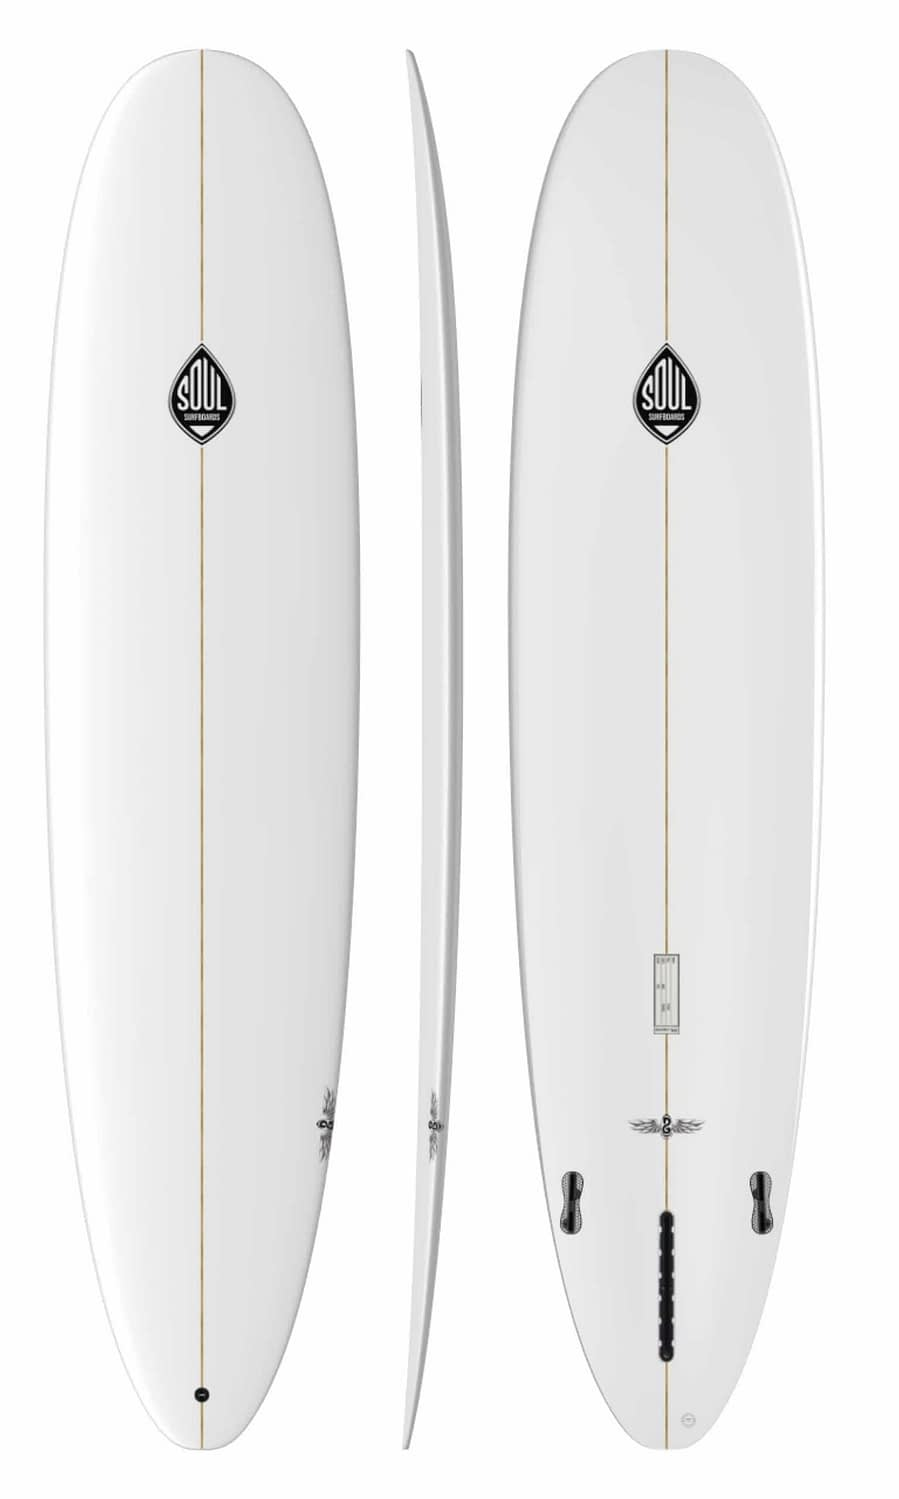 The Bolt Soul Surfboards